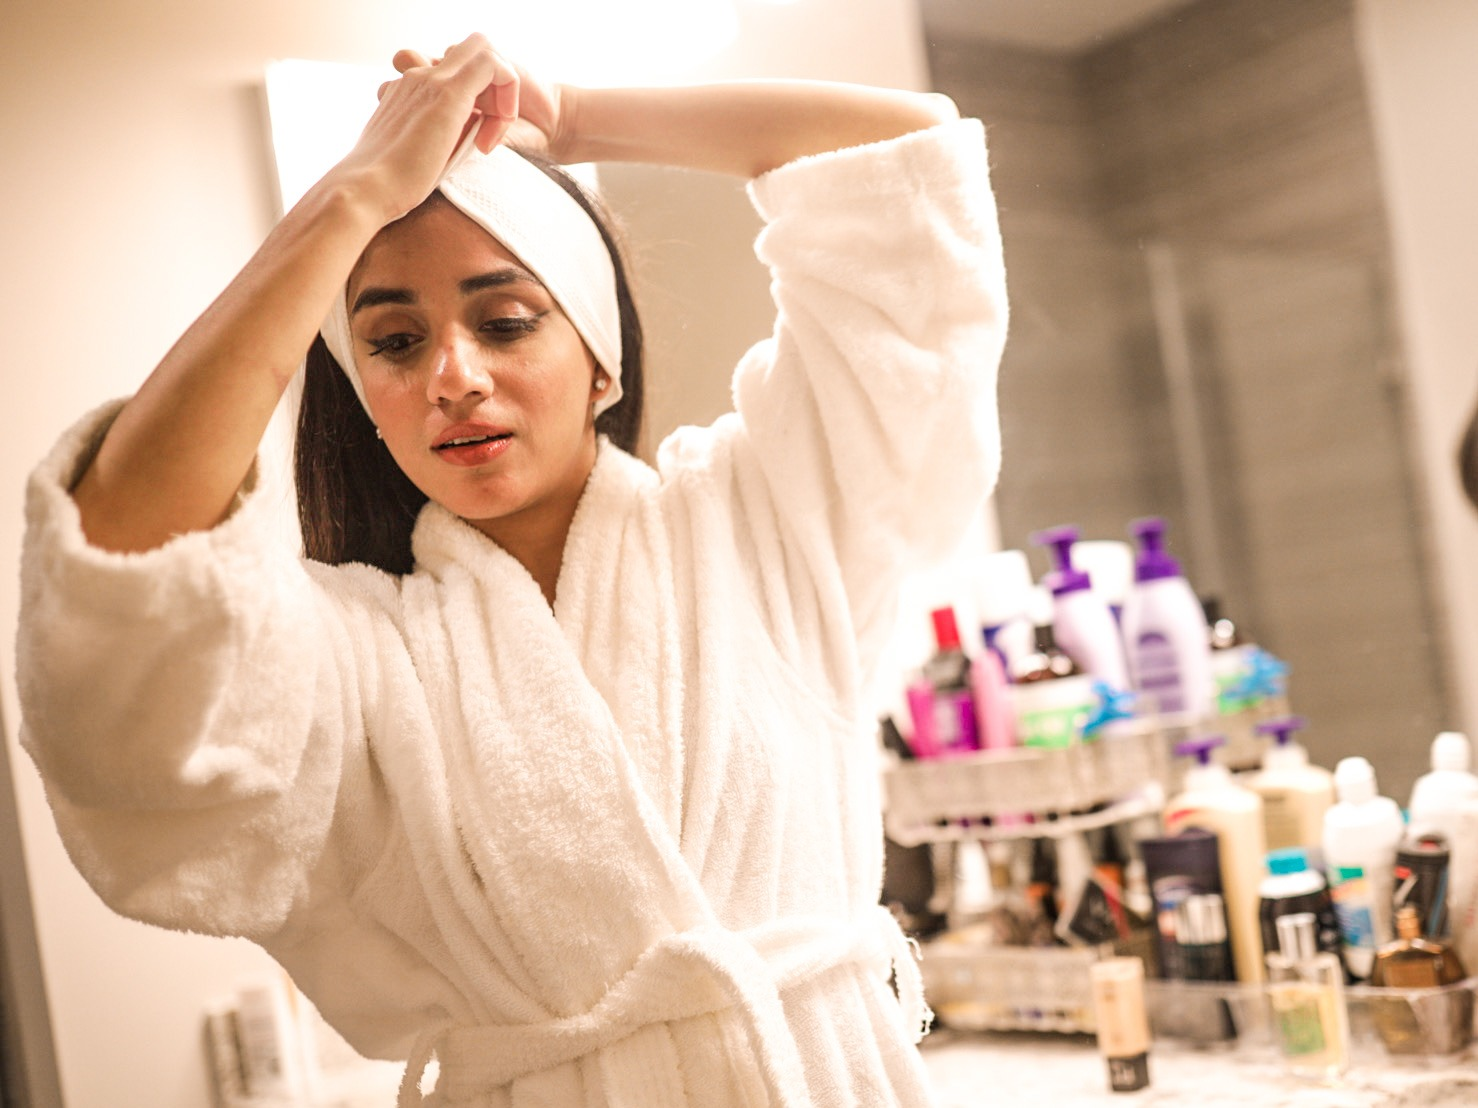 Faiza-Inam-Sincerely-Humble-blog-skincare-Here-are-5-Ways-To-Unclog-Your-Pores-chemical-exfoliate-2